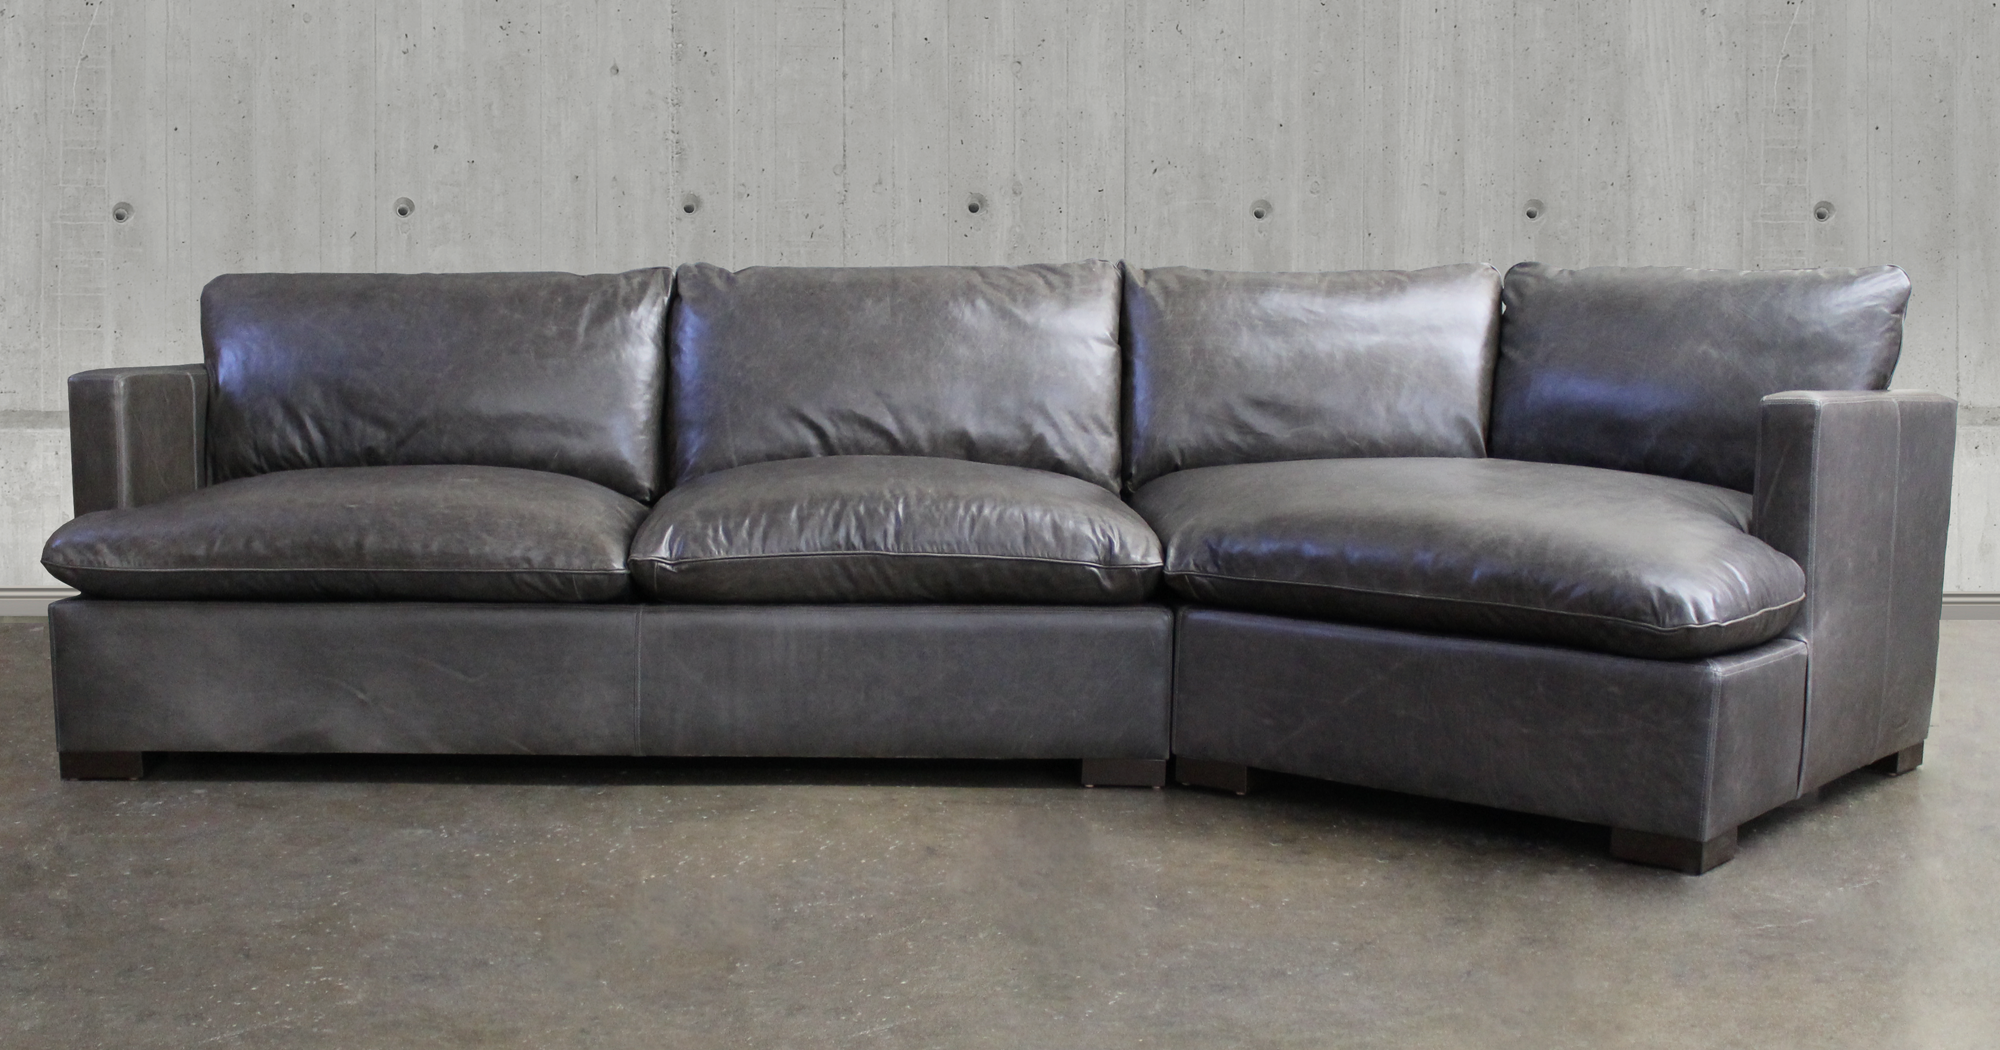 Reno Leather Sectional Sofa with Cuddler in Italian Glove Timberwolf Leather